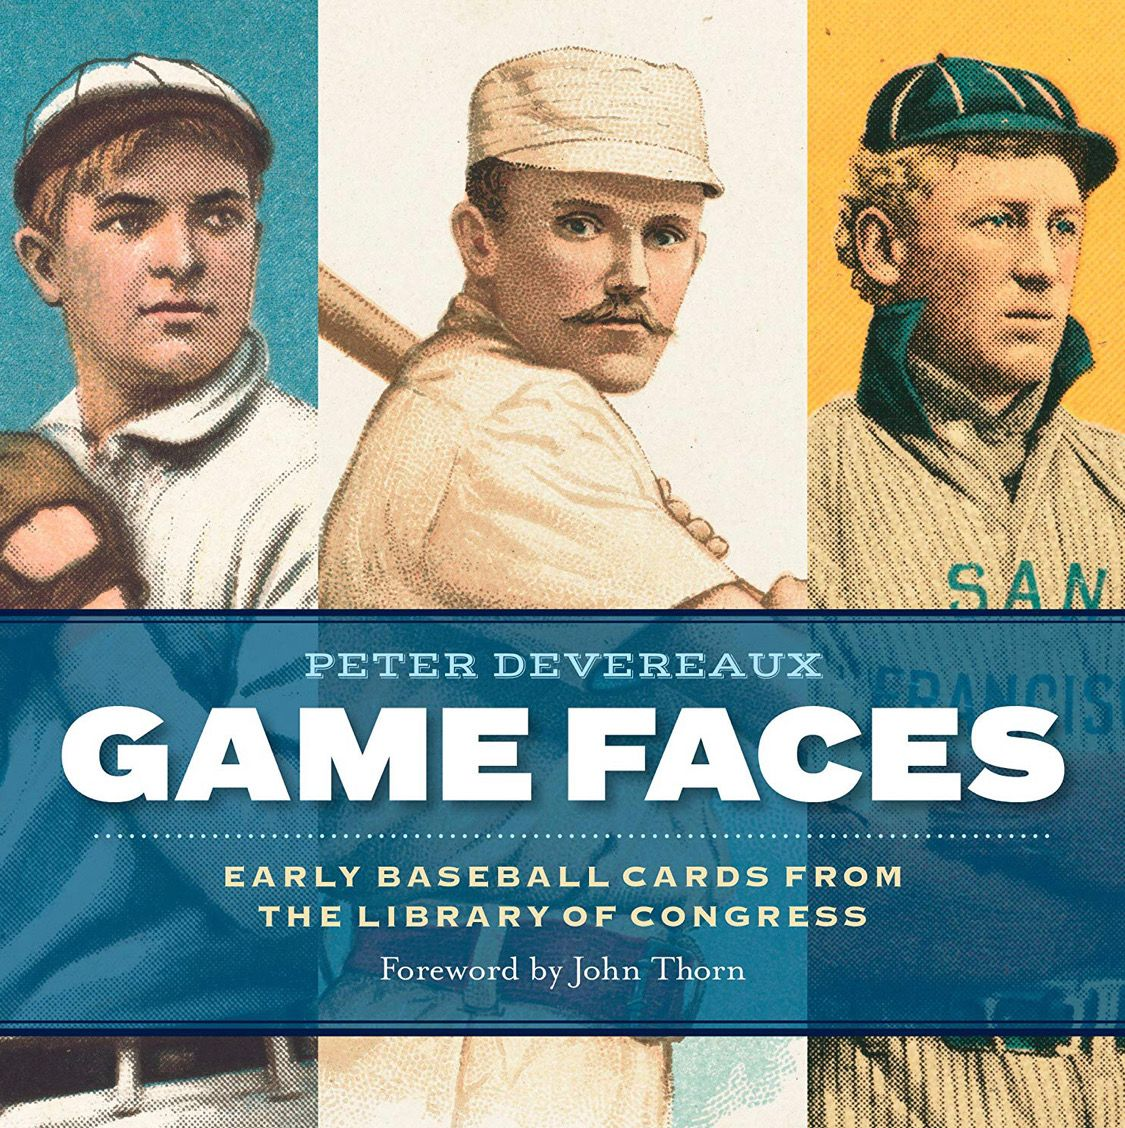 Games Faces by Peter Devereaux Baseball cards, Baseball